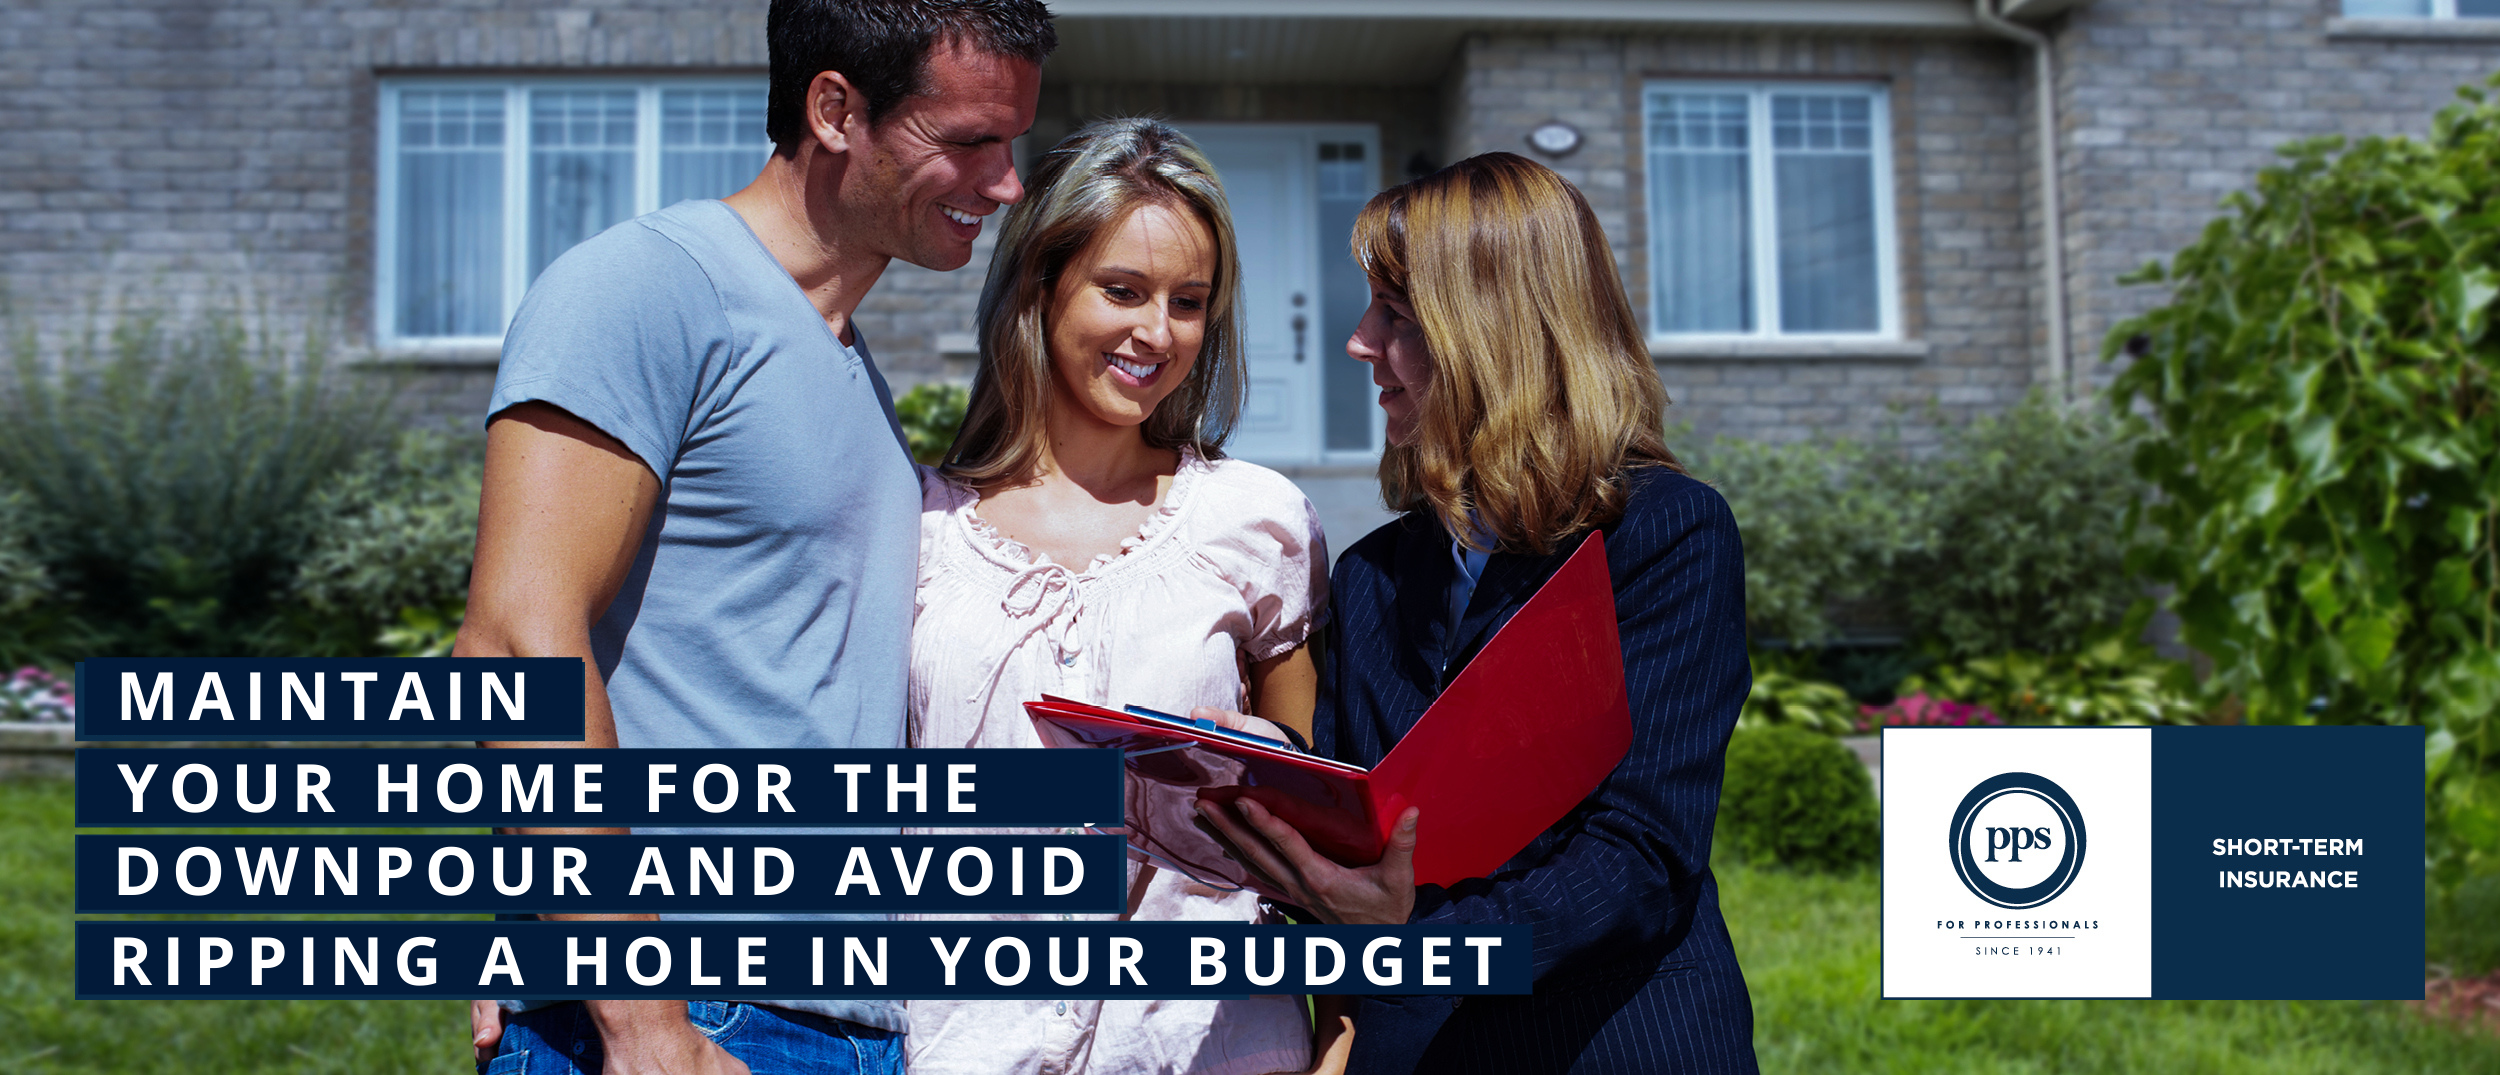 MAINTAIN YOUR HOME FOR THE DOWNPOUR AND AVOID RIPPING A HOLE IN YOUR BUDGET